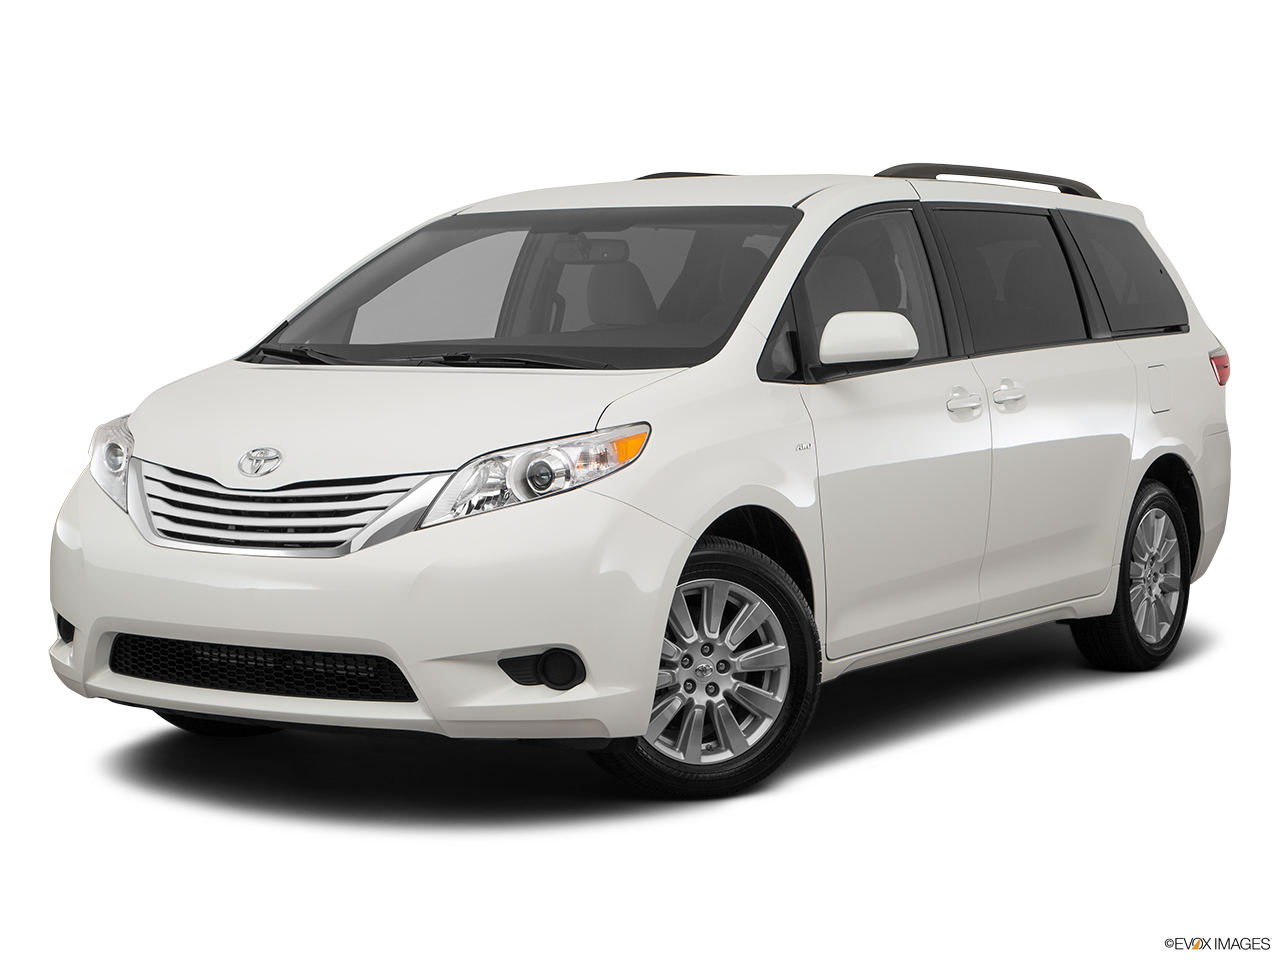 Test Drive A 2017 Toyota Sienna at Tustin Toyota in Tustin